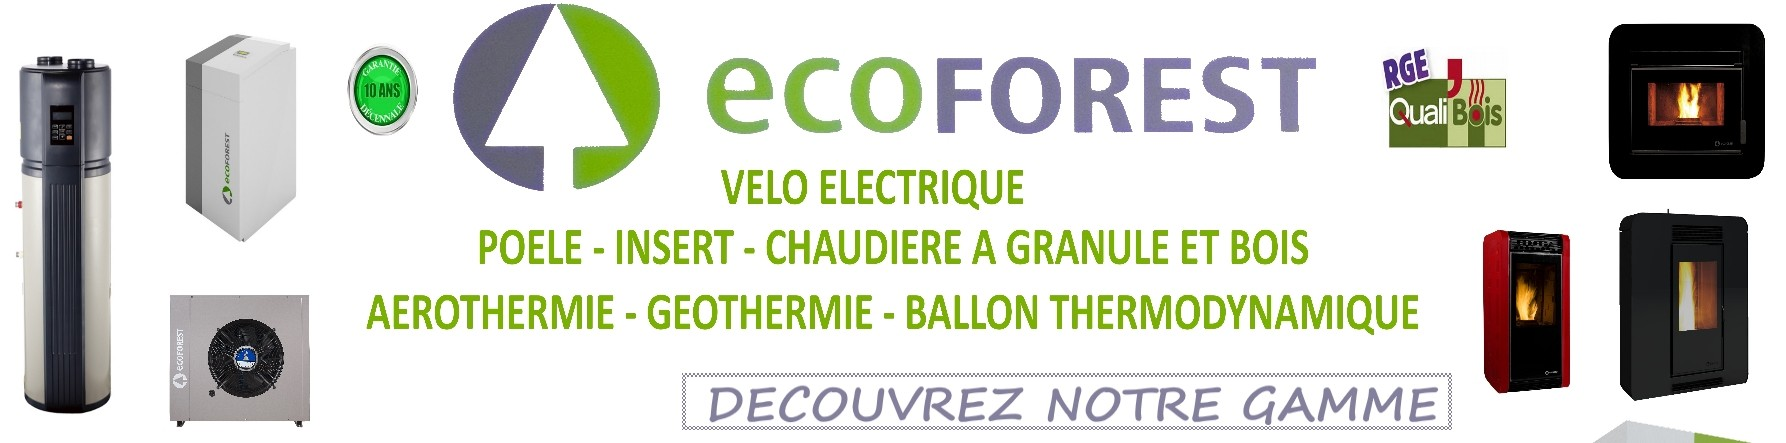 Gamme ecoforest